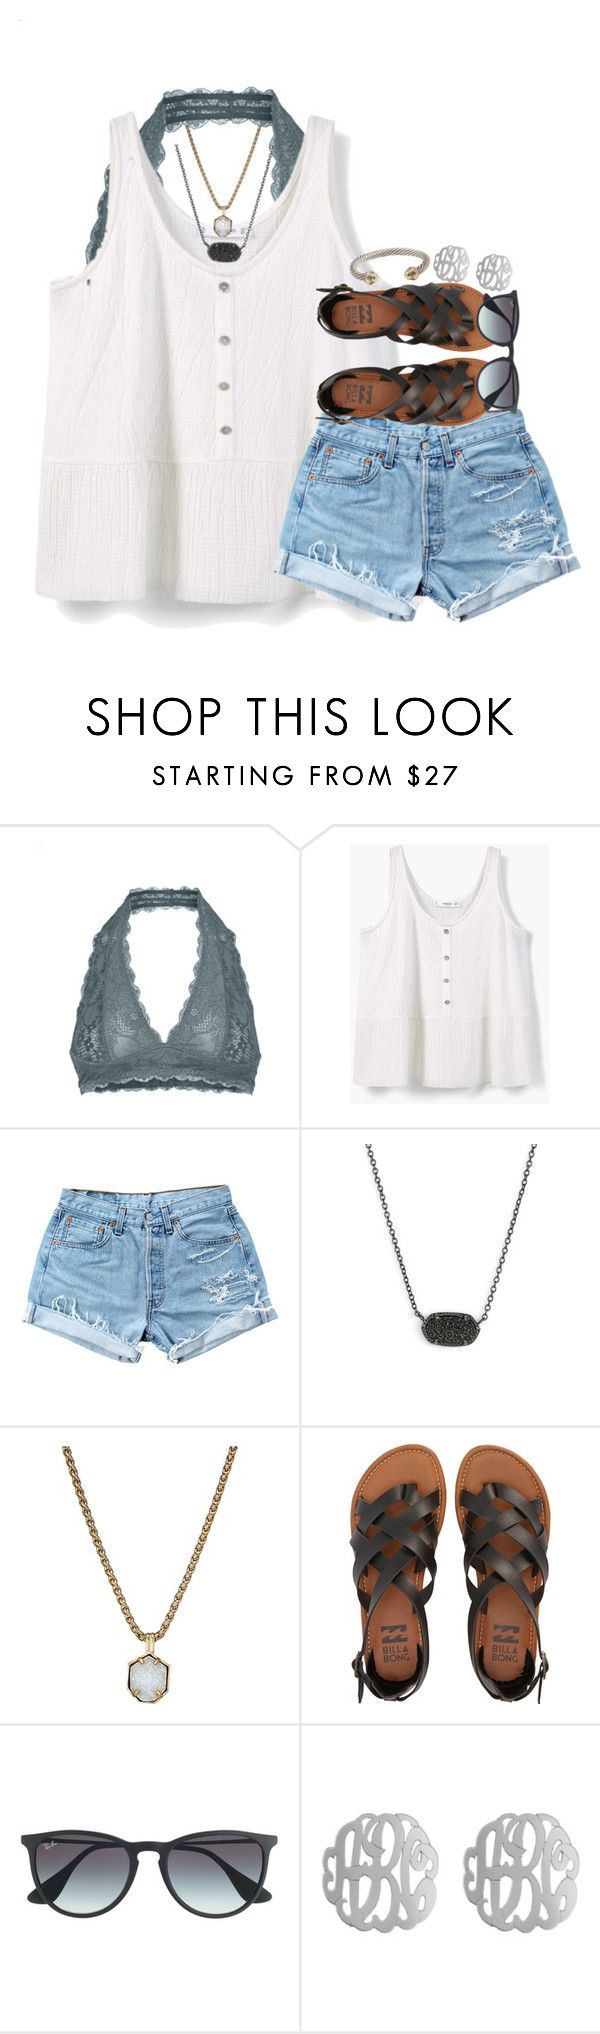 """""""what's ur biggest plan 4 the summer?"""" by syd-em ❤ liked on Polyvore featuring Free People, MANGO, Levi's, Kendra Scott, Billabong, Ray-Ban, Initial Reaction and David Yurman"""